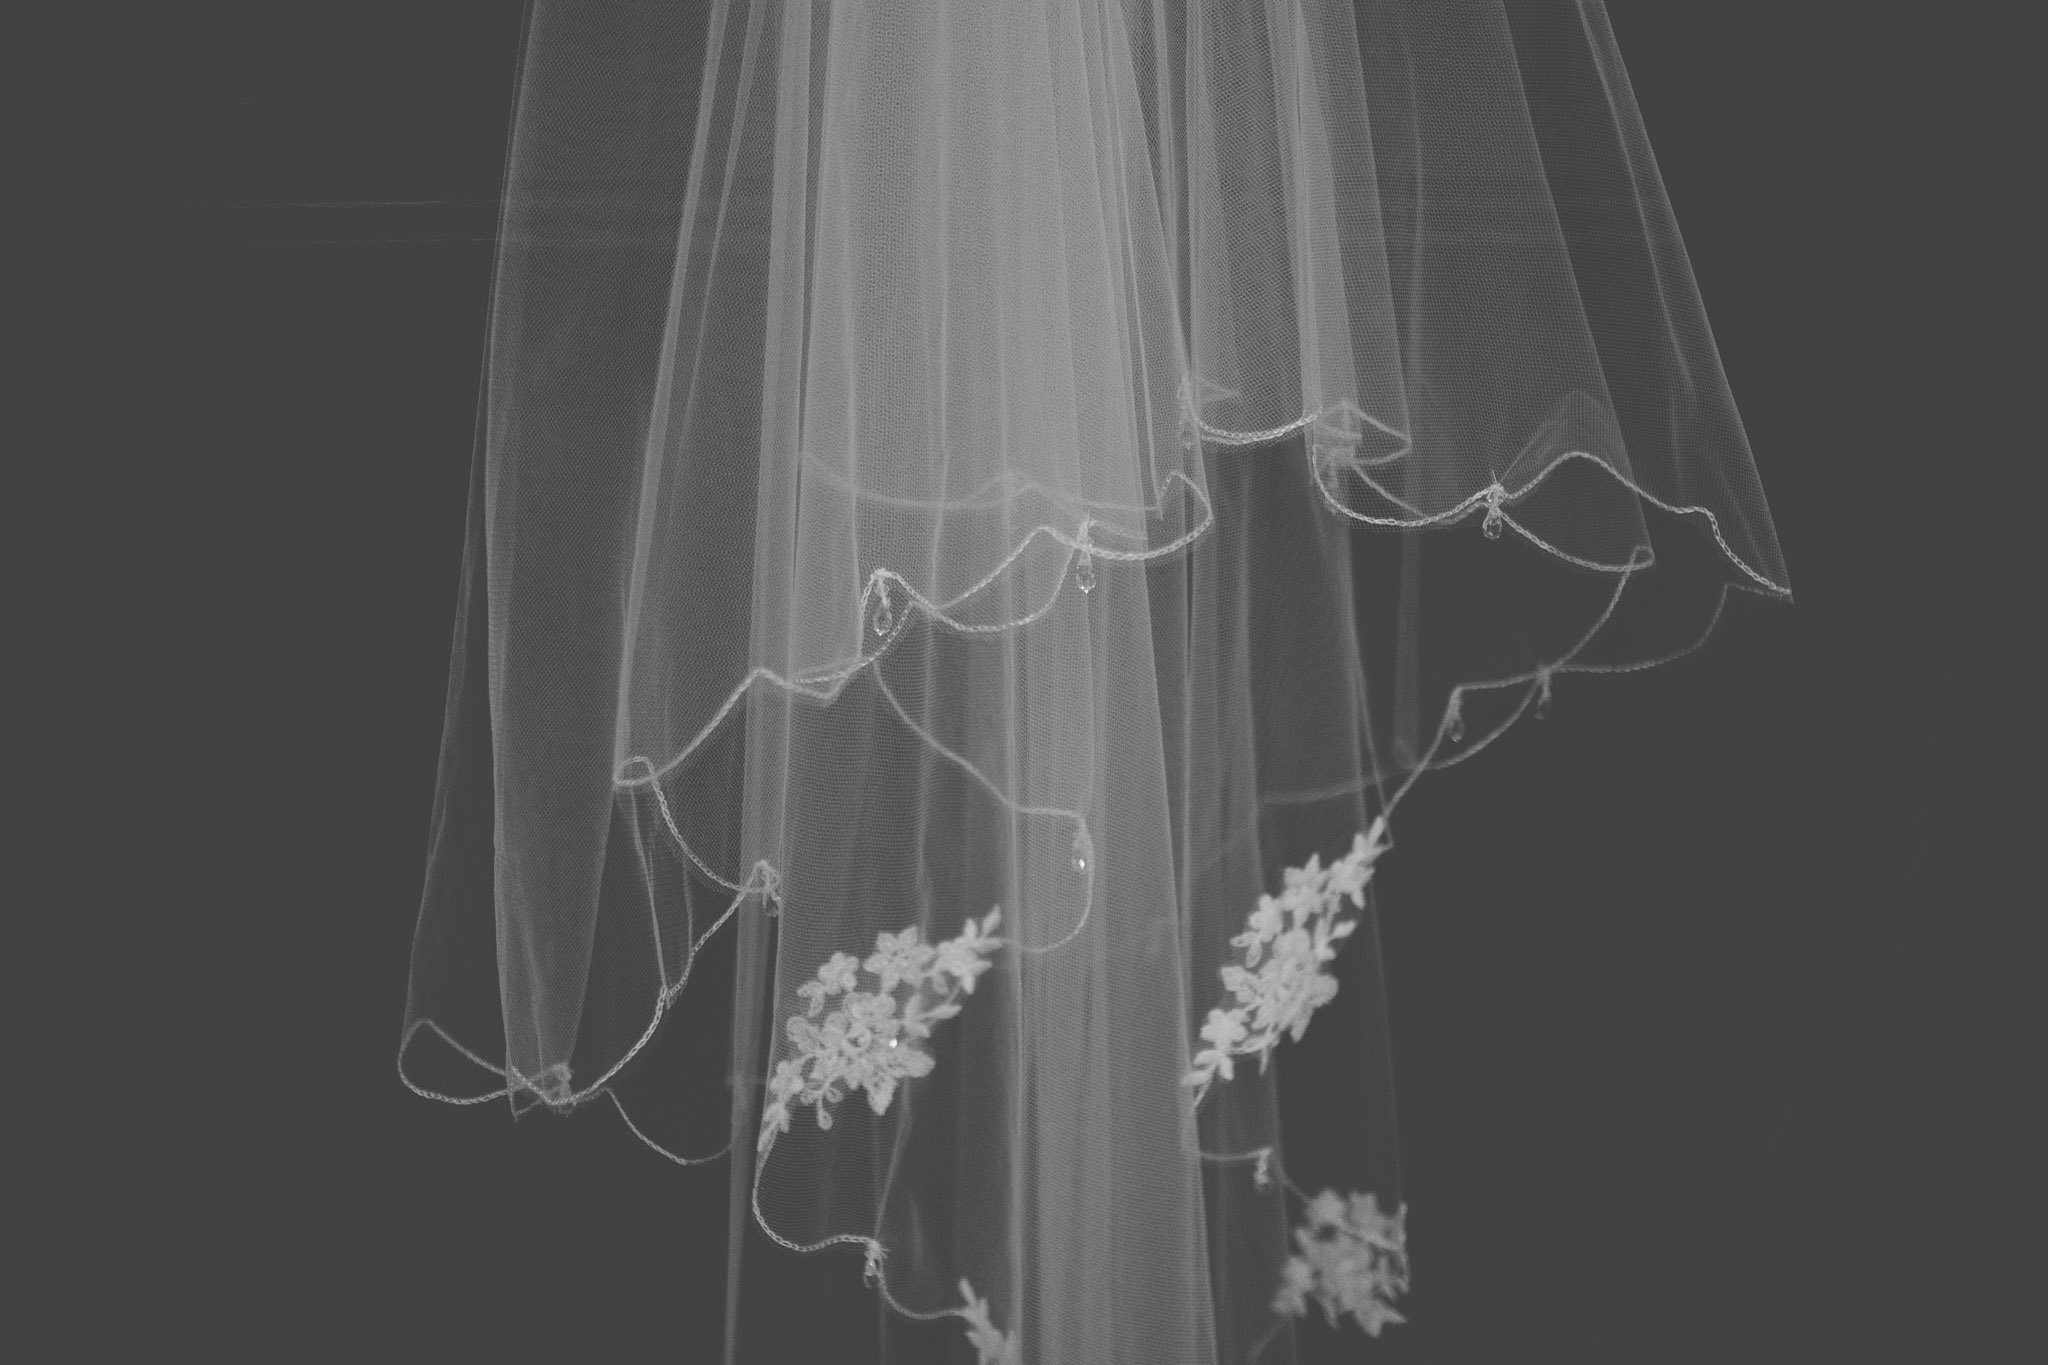 Close up details of wedding veil